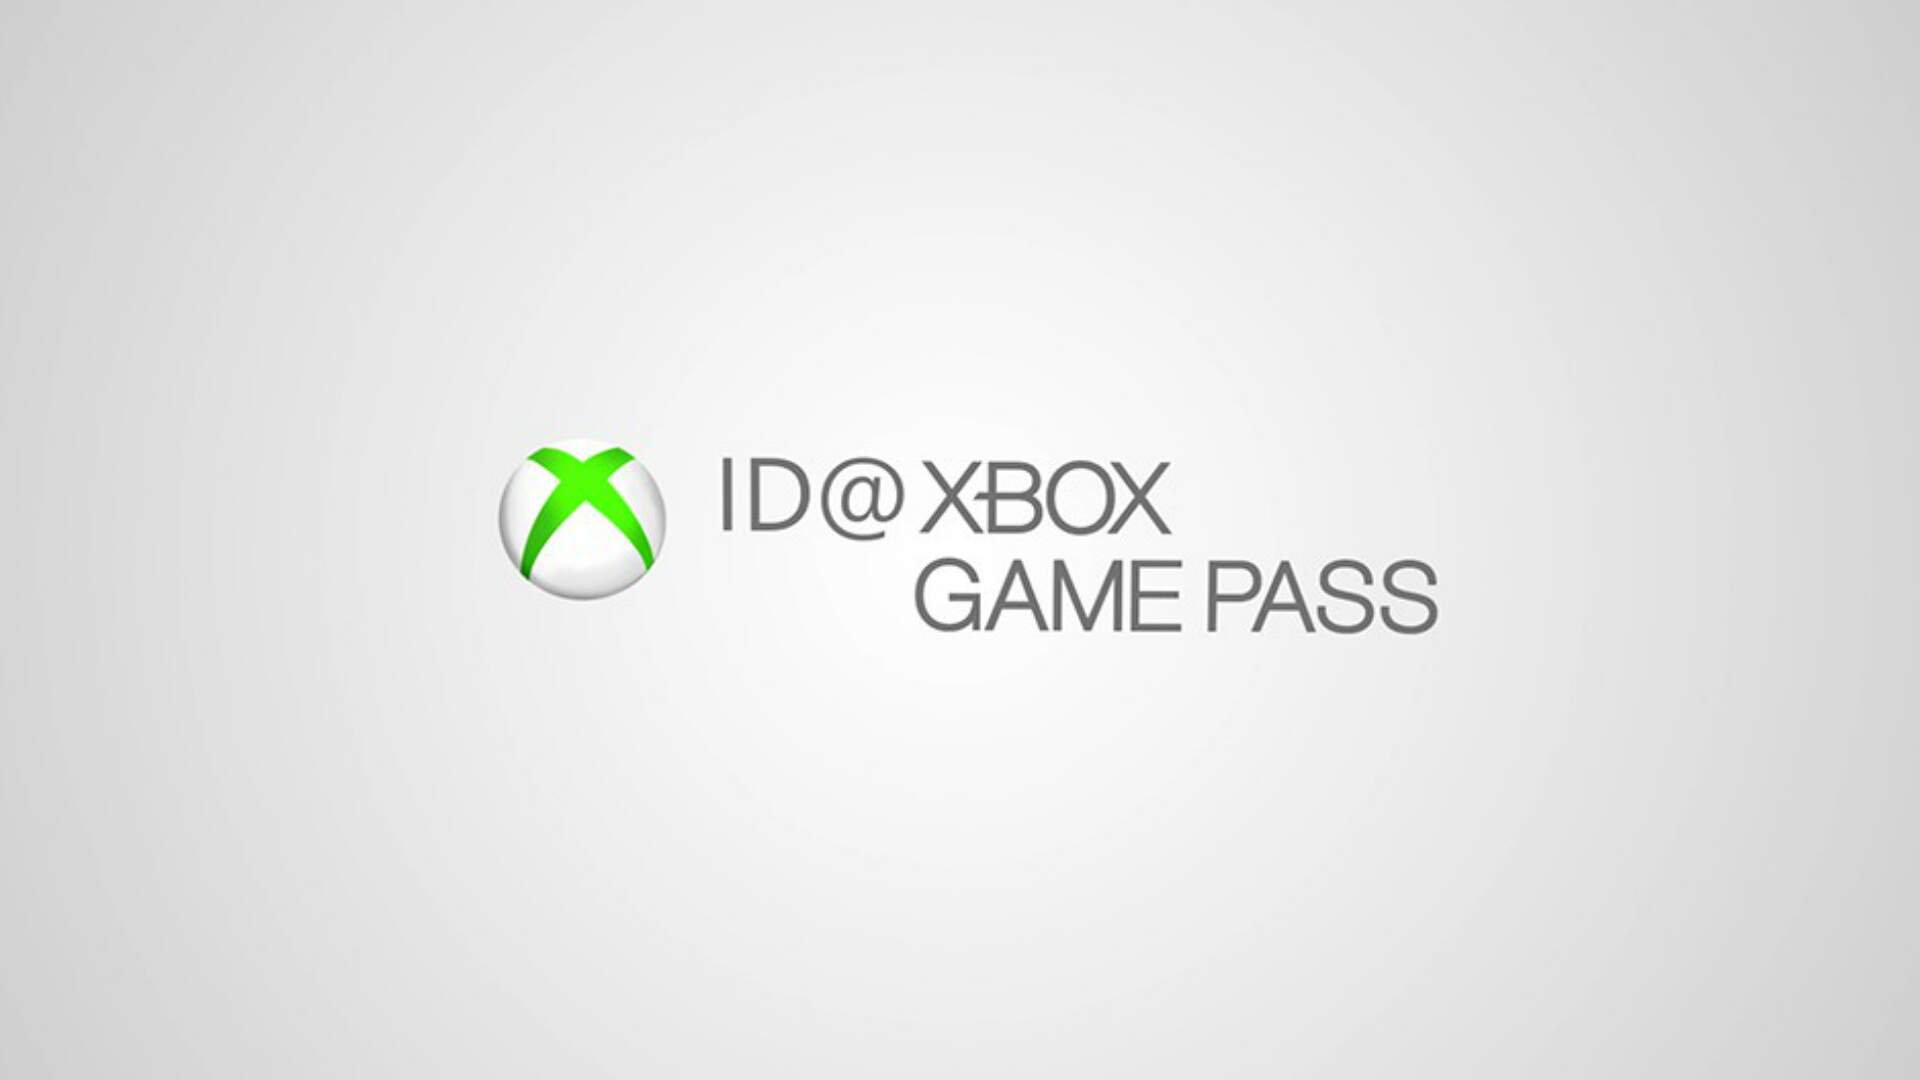 Xbox Will Begin Showcasing Indie Games on Nindies-Style ID@Xbox Game Pass